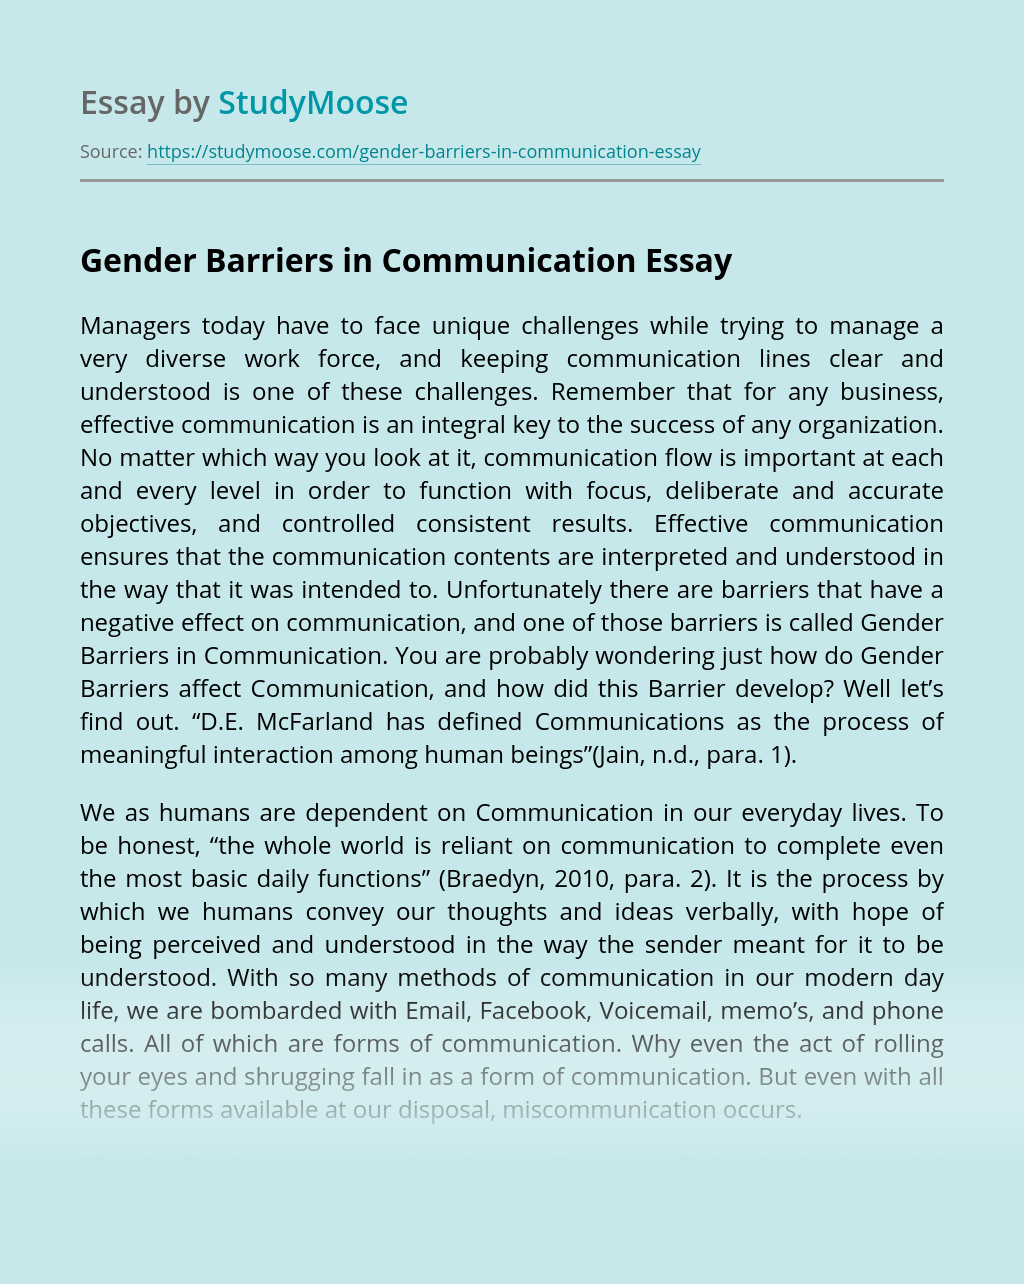 Gender Barriers in Communication